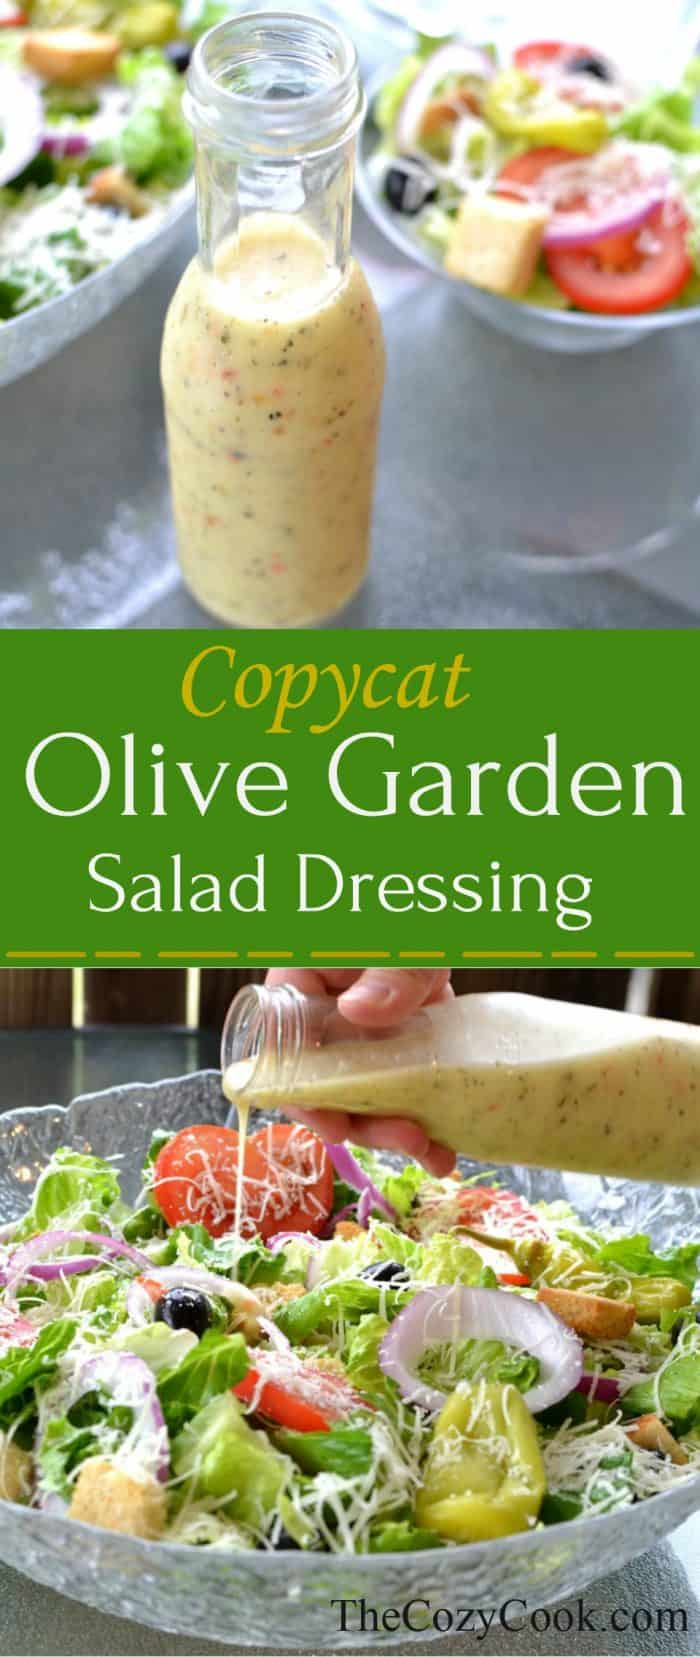 This homemade copycat Olive Garden Salad Dressing is the perfect accompaniment to fresh lettuce and salad ingredients- and so easy to make at home! | The Cozy Cook | #Copycat #SaladDressing #OliveGarden #Italian #Vegetarian #Healthy #ItalianSaladDressing #CopycatOliveGarden